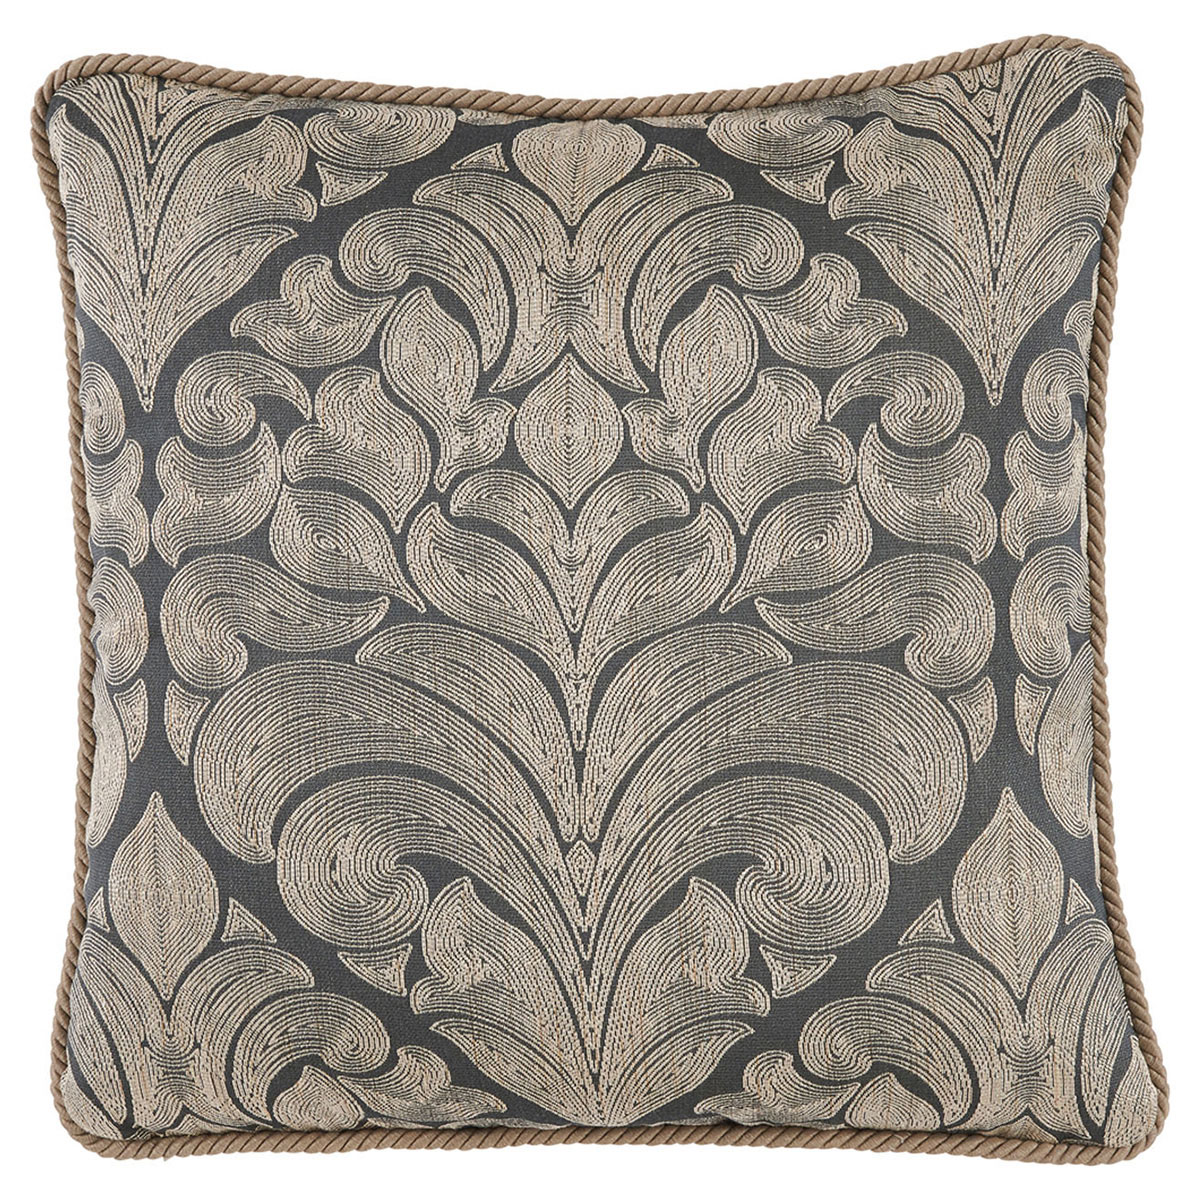 Pepin French Woven Charcoal Medallion Pillow - 22x22